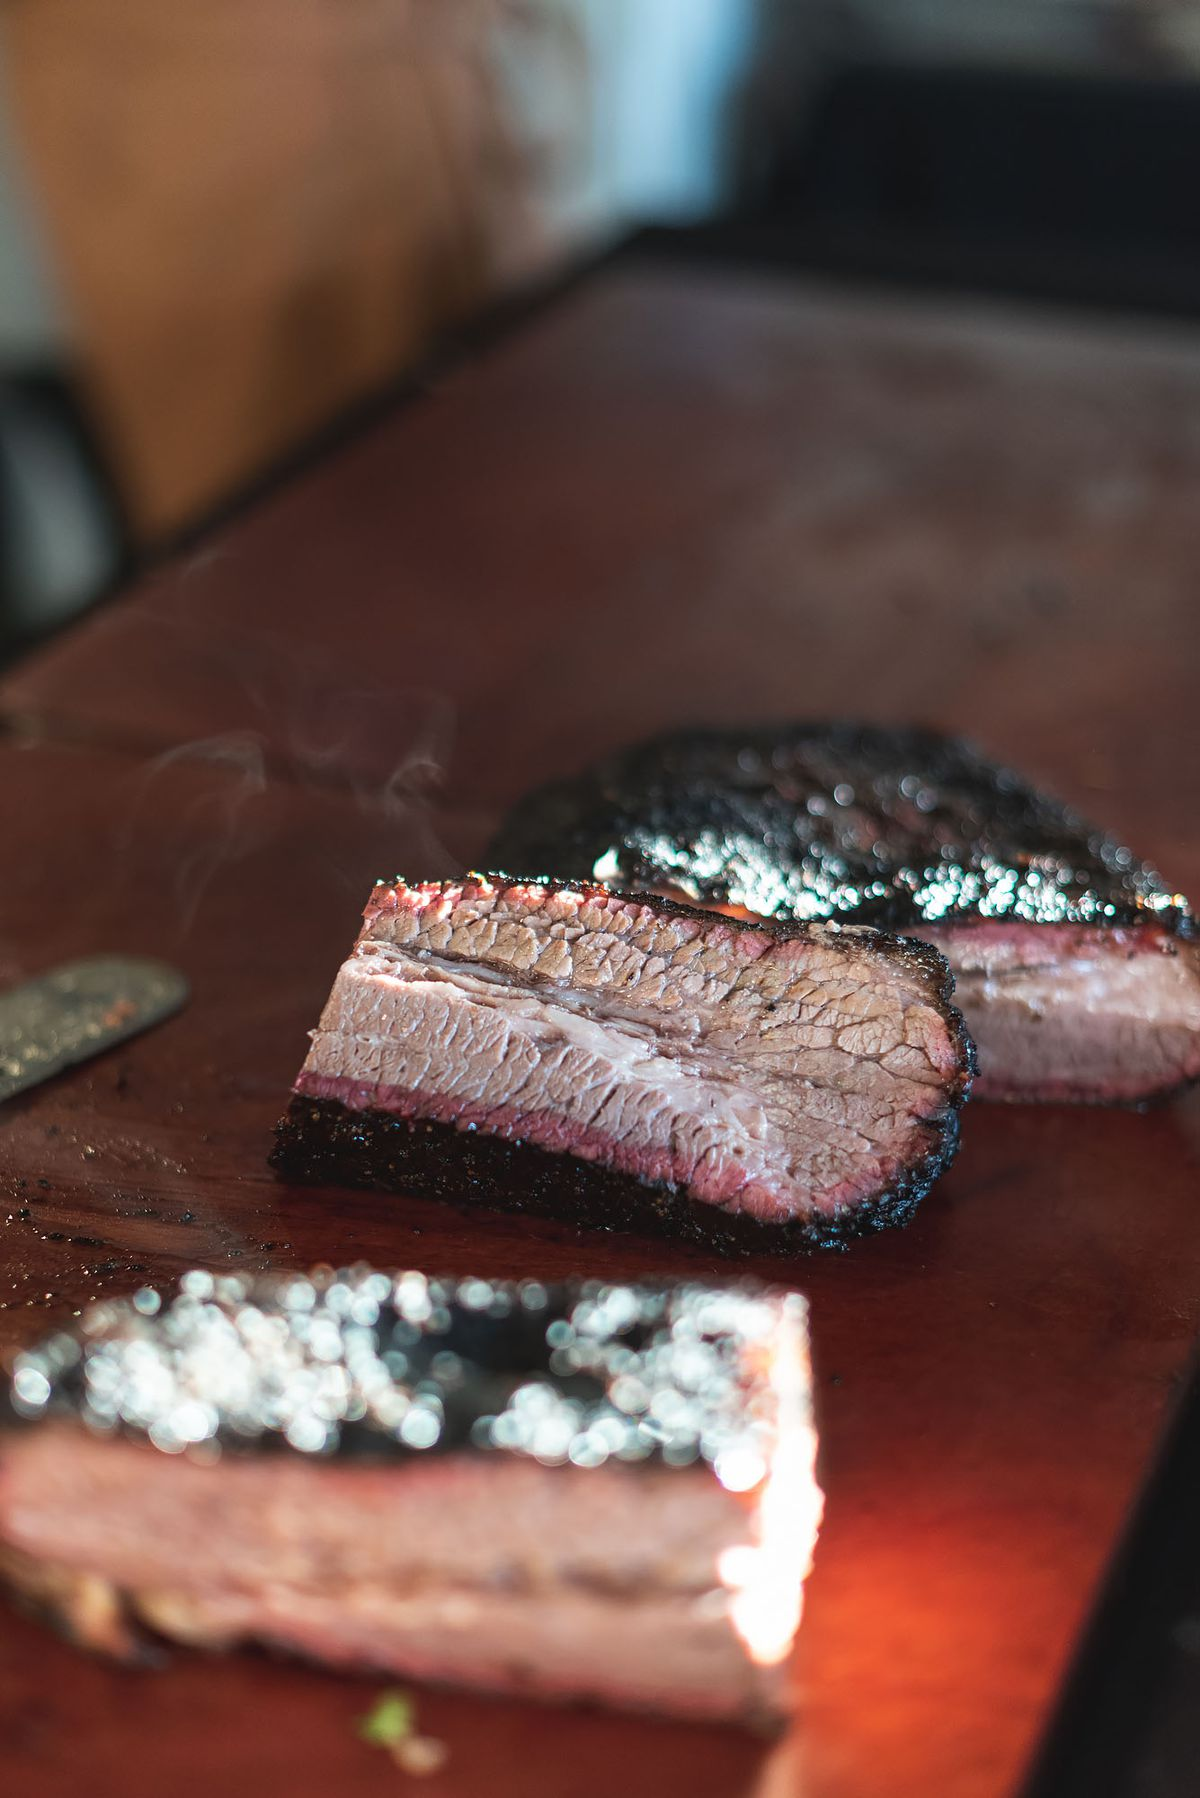 A slice of beef brisket smokes after just being cut.